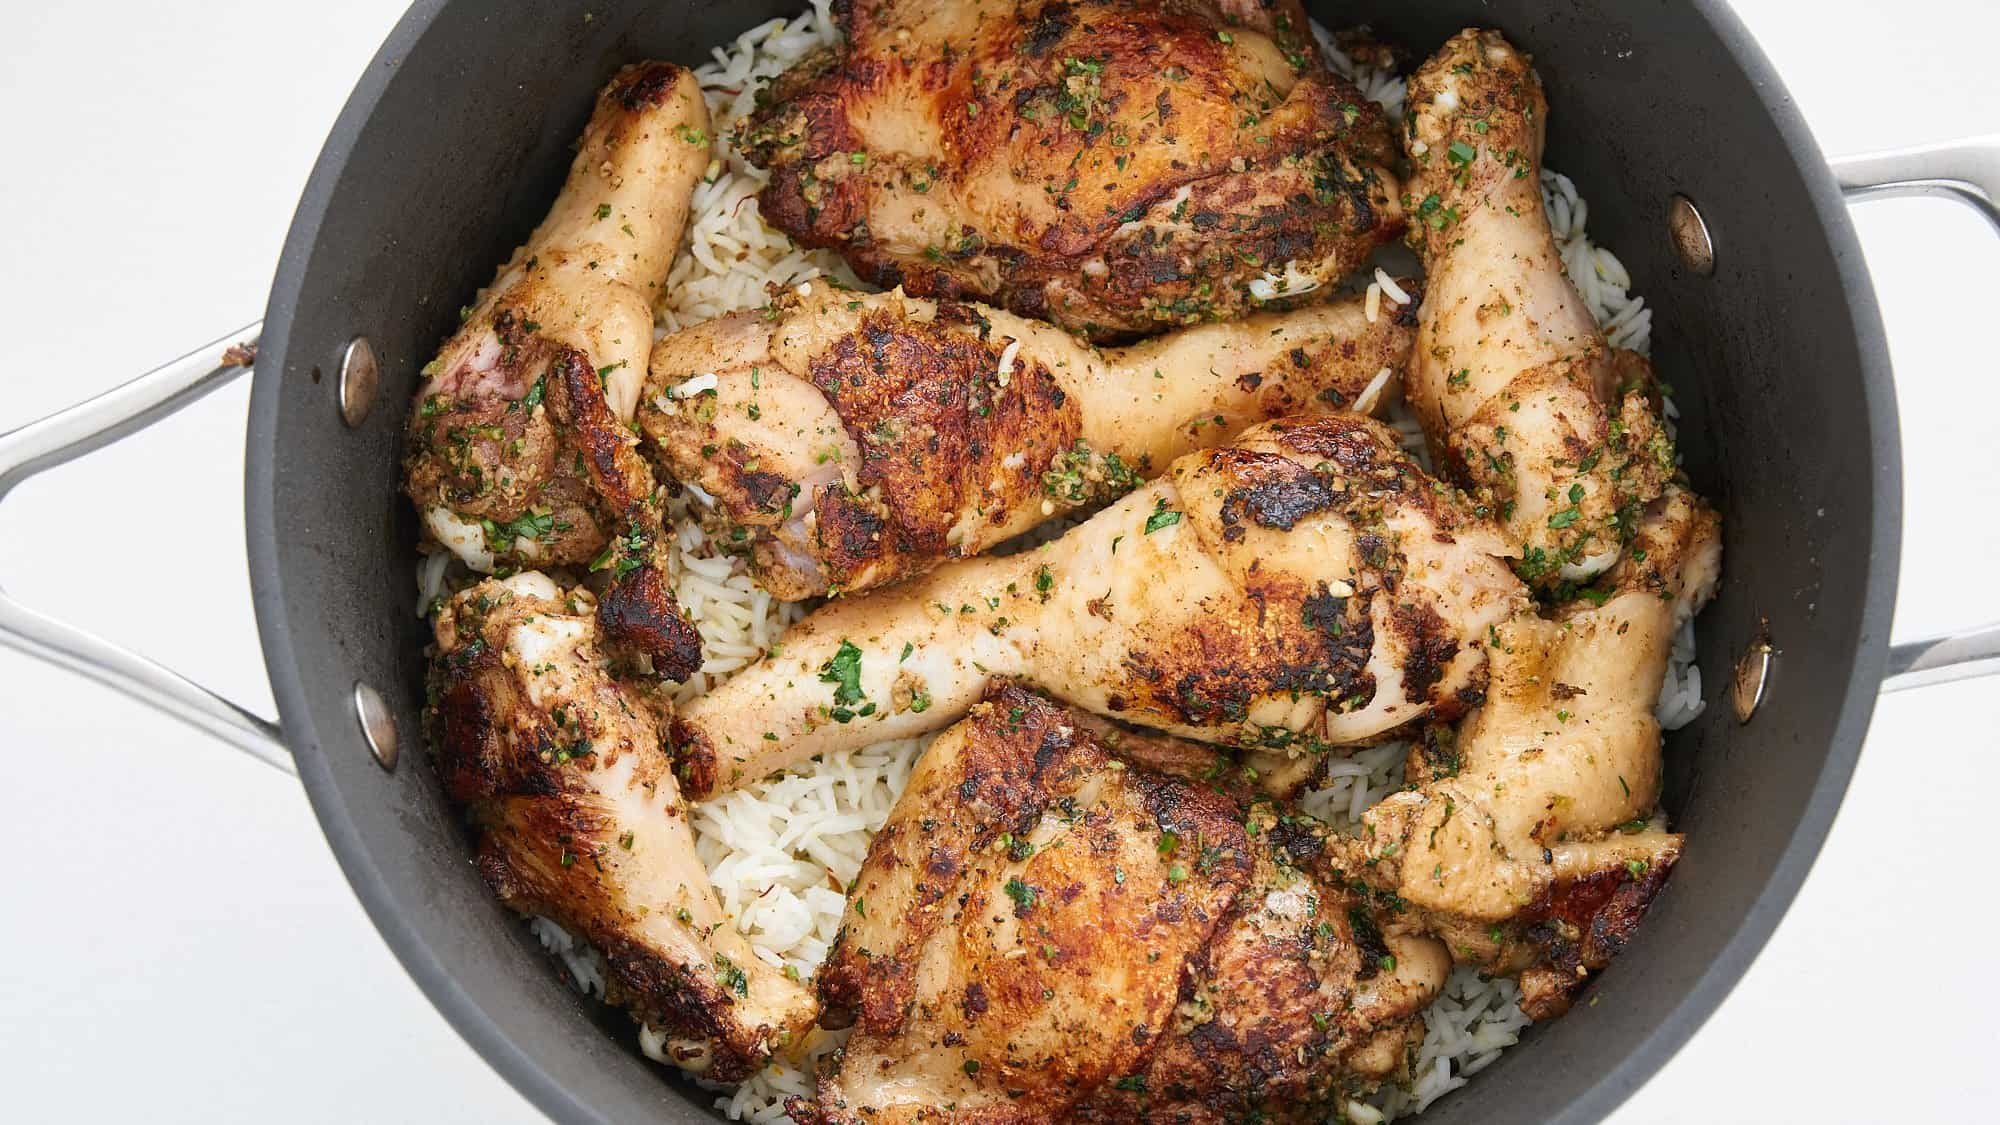 The browned chicken gets layeed on the rice.